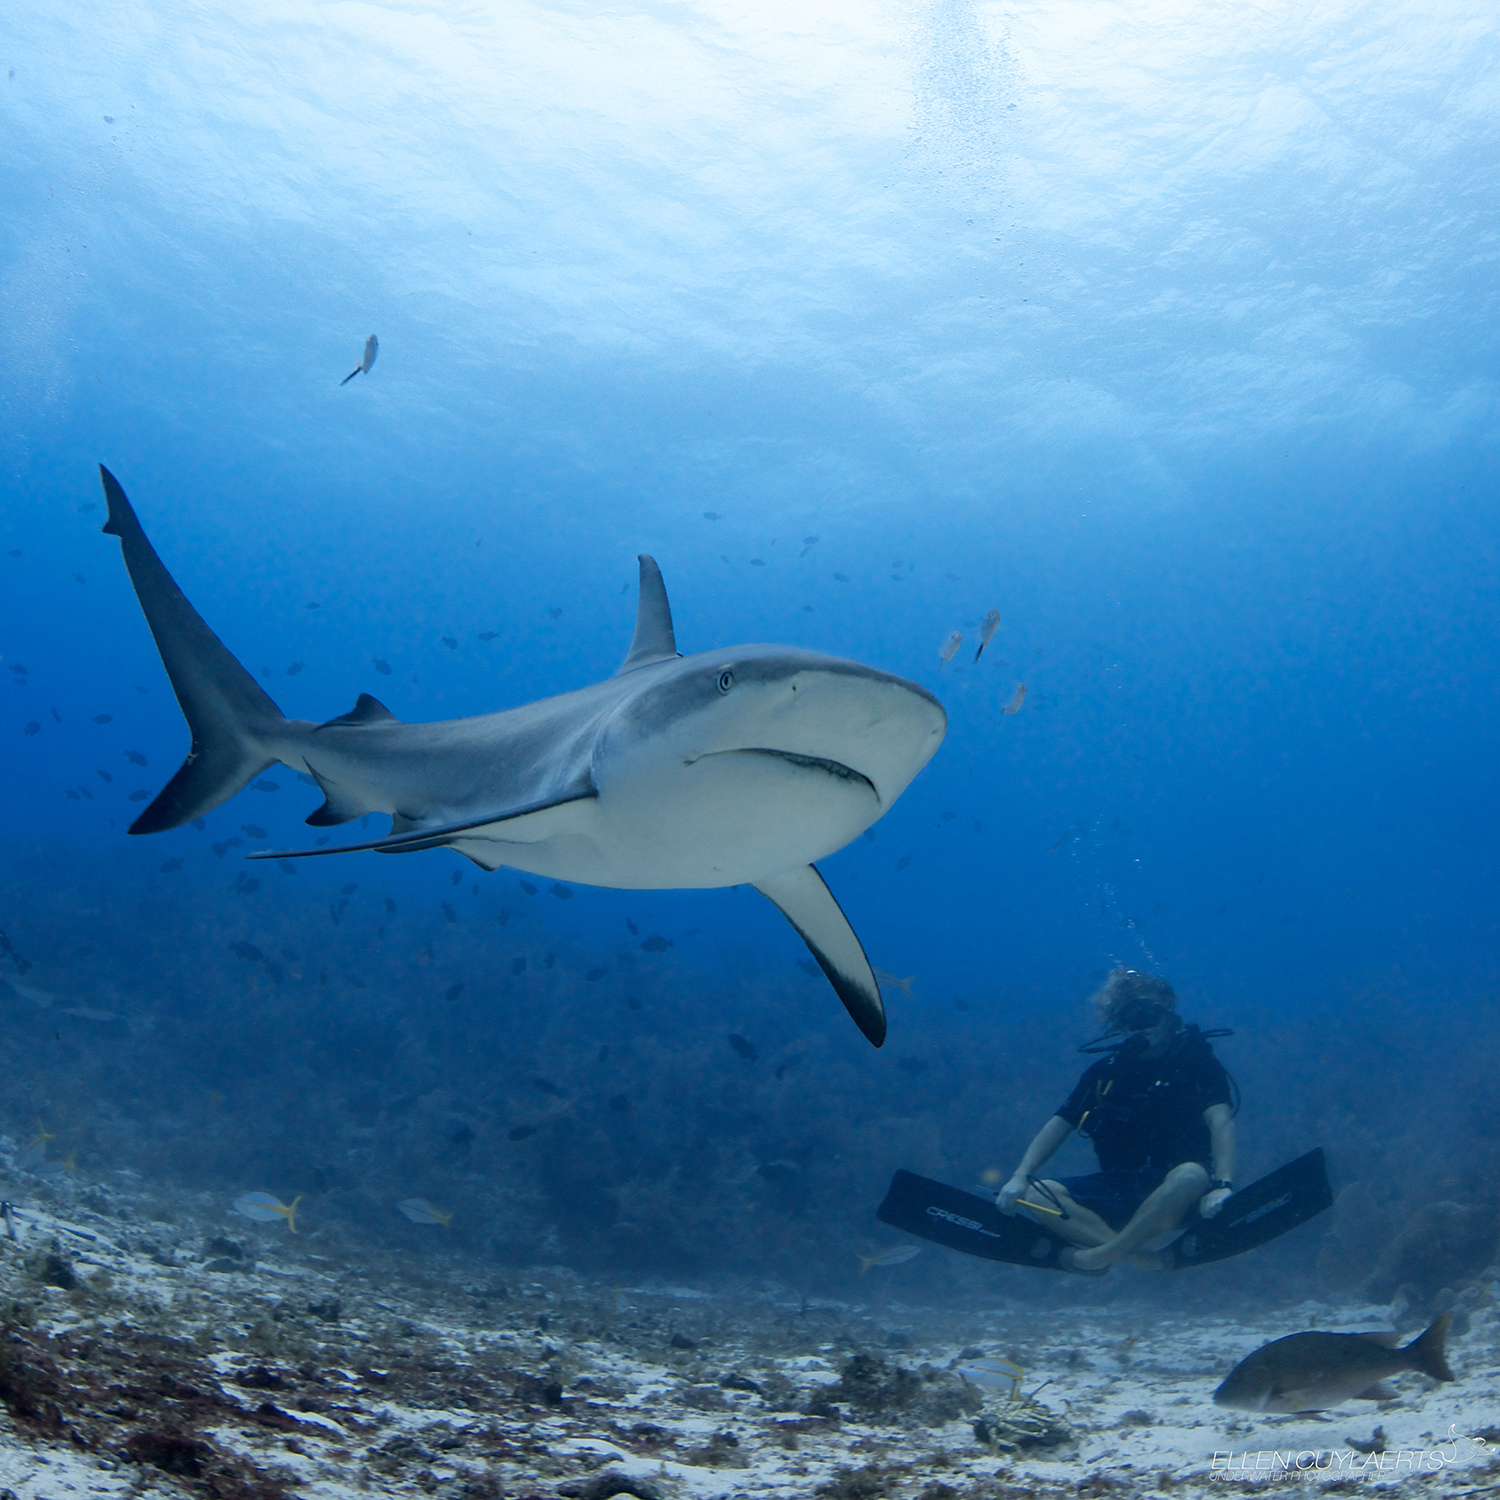 Sharks, kill, humans kill 73 million sharks per year for just their fins, shark diving, shark finning